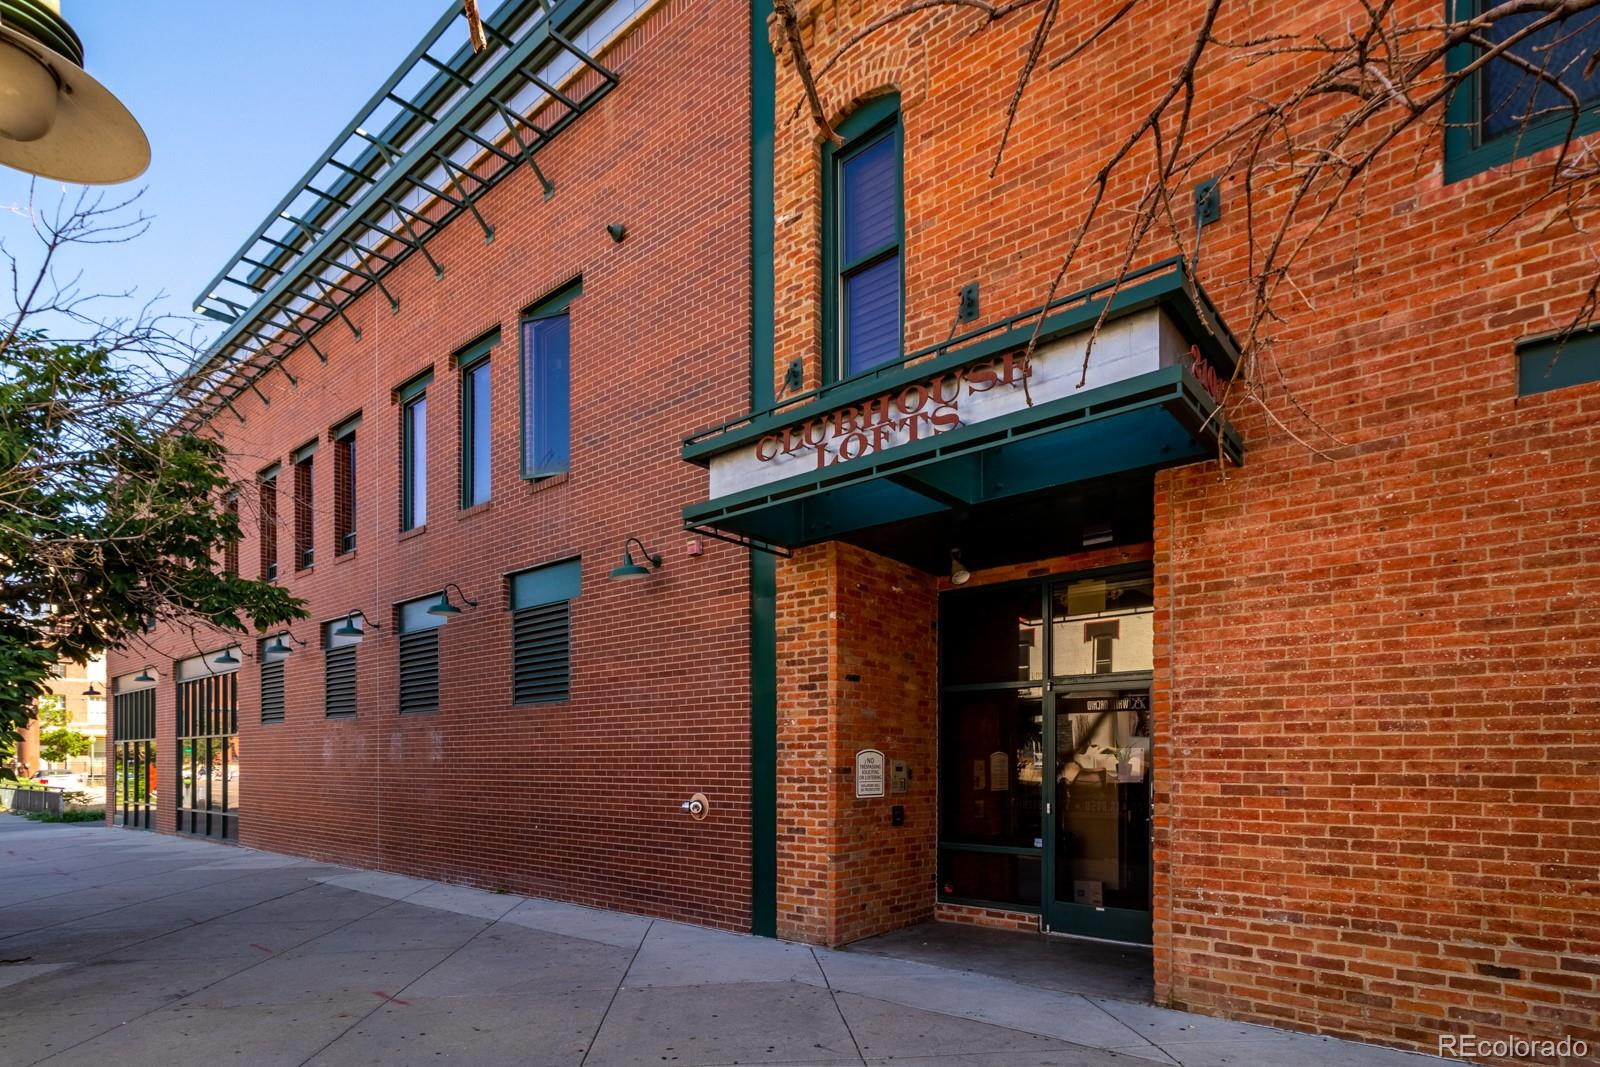 This 2 bedroom condo is exactly what you are looking for in the heart of LoDo! Walking through the front door, you'll notice that the condo opens up into a great living space with an amazing kitchen. The private balcony is awesome for entertaining guests and utilizing the hot tub. The downtown views are spectacular. You'll also have your choice of bars, restuarants, entertainment, and Coors Field all within an easy walking distance.